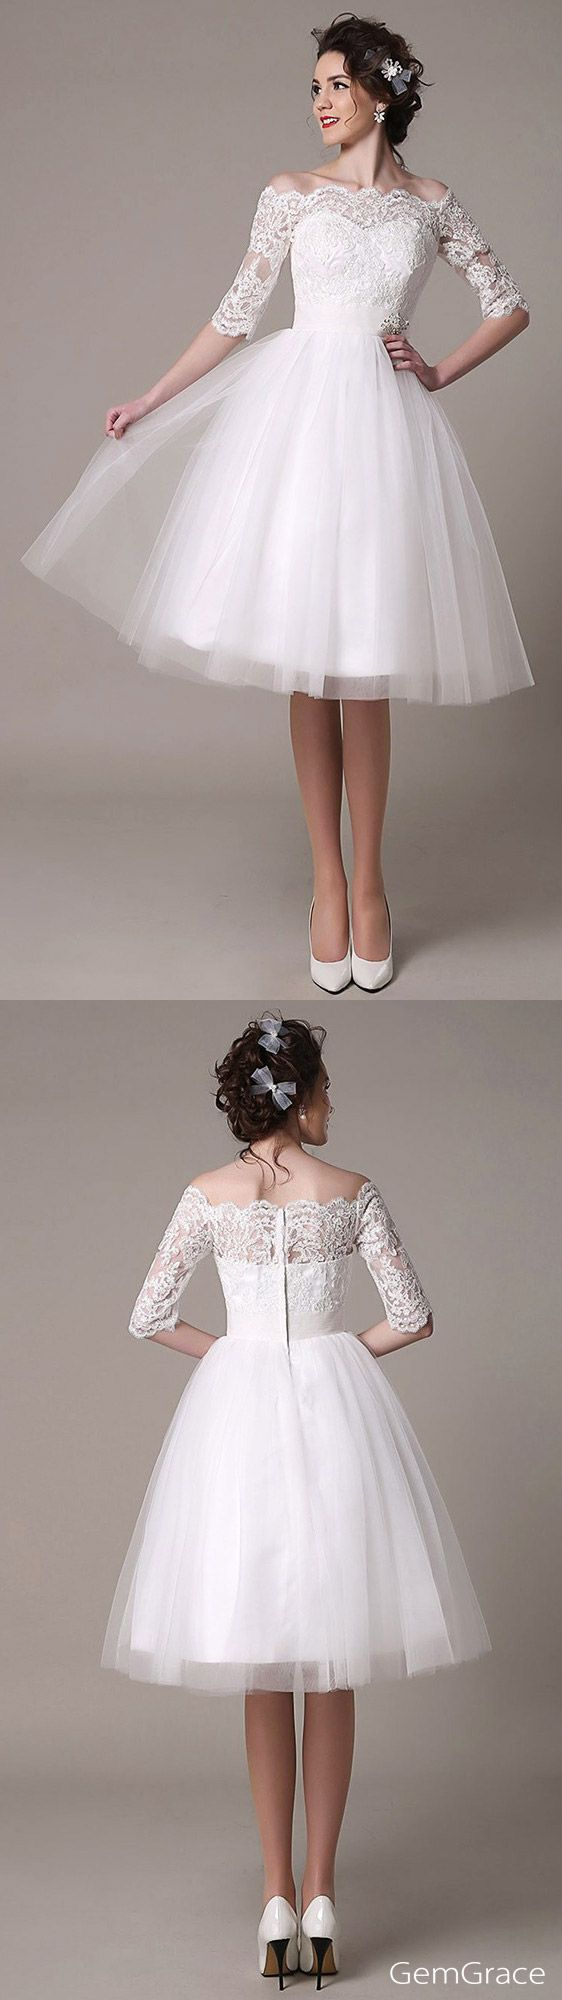 Vintage short wedding dress i love vintage this beautiful knee